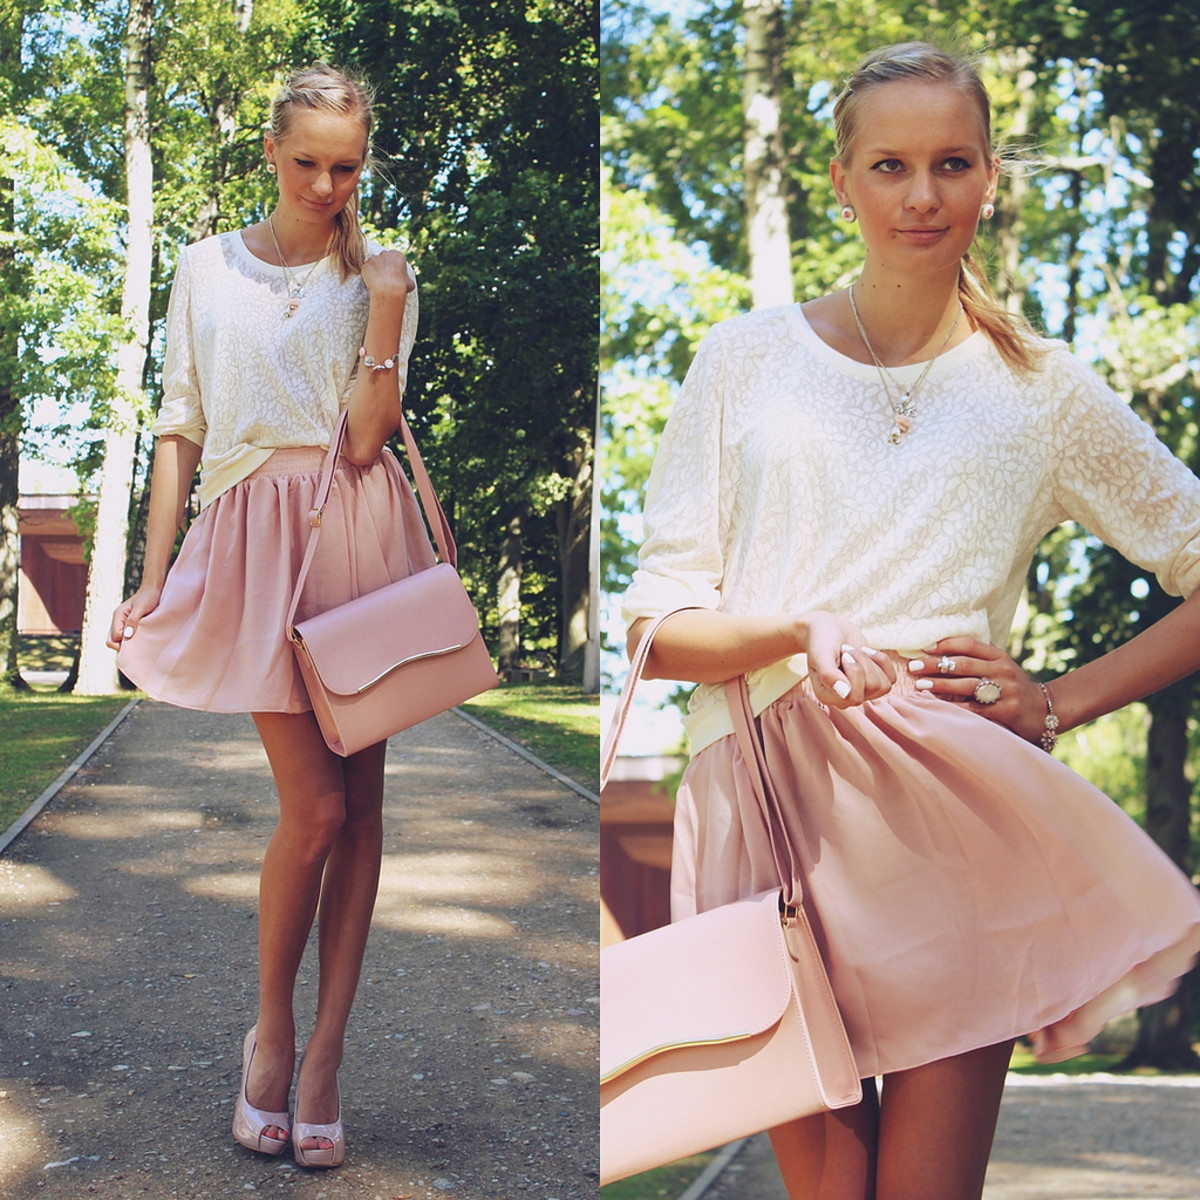 Start with a lacy white blouse and add a flirty peach or pink skirt.